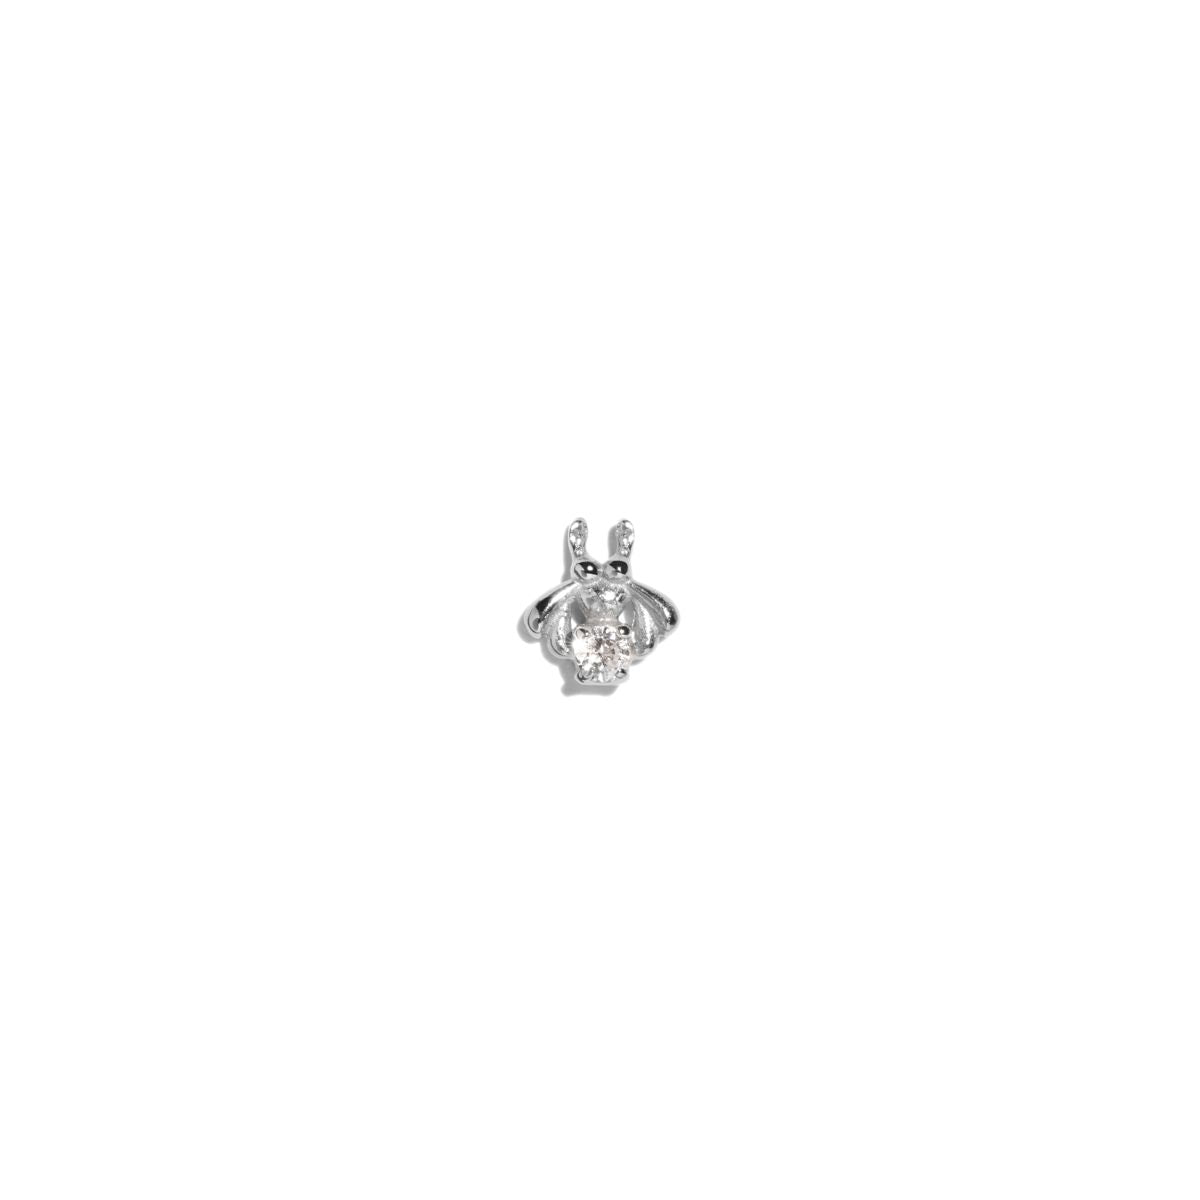 The Single Silver Diamond Bee Stud Earring